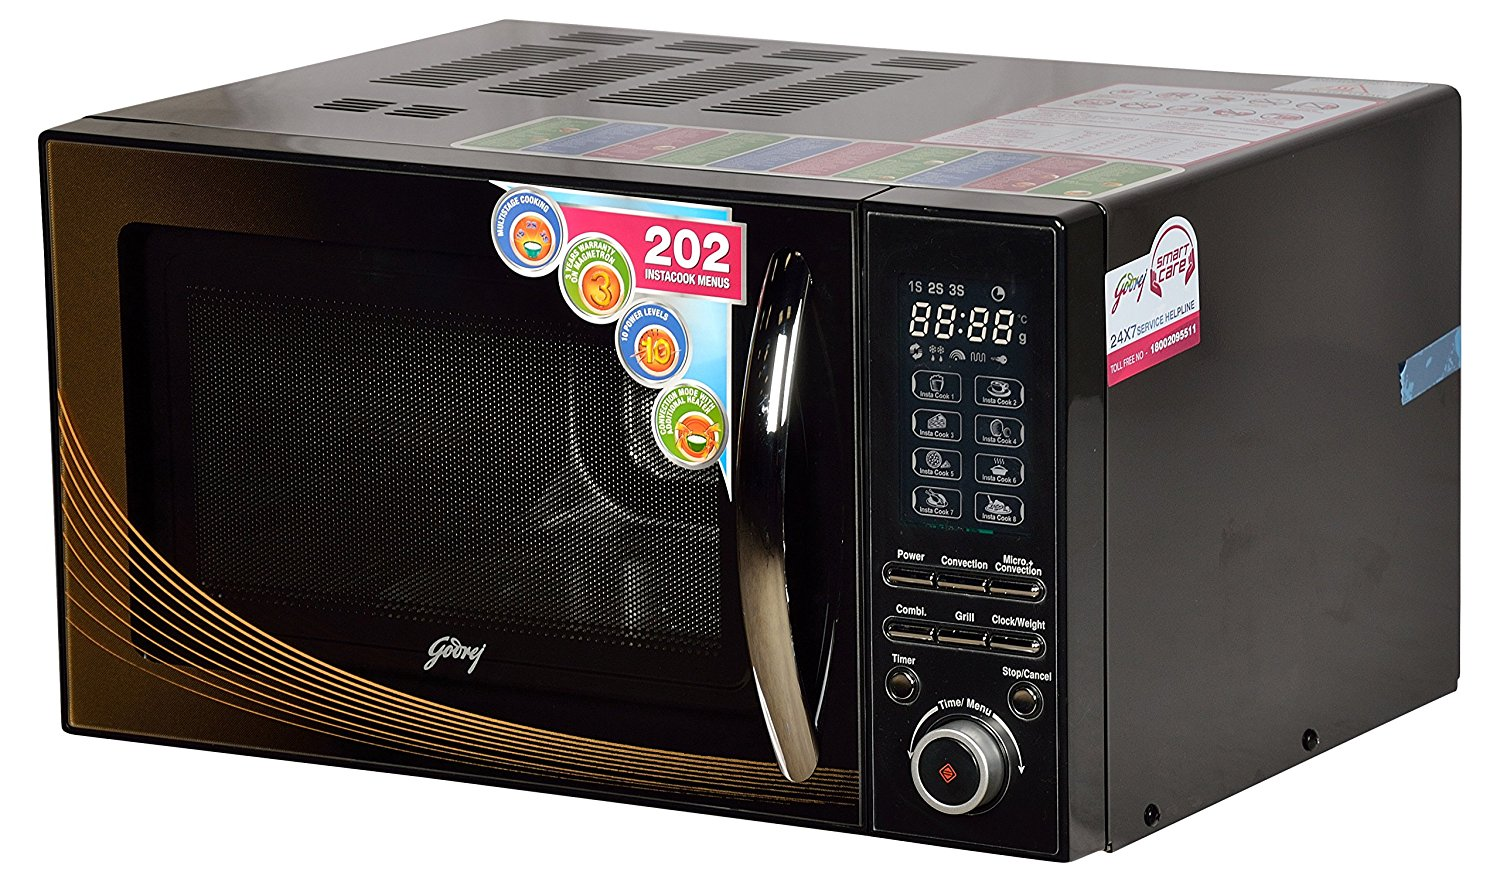 microwave oven from Godrej